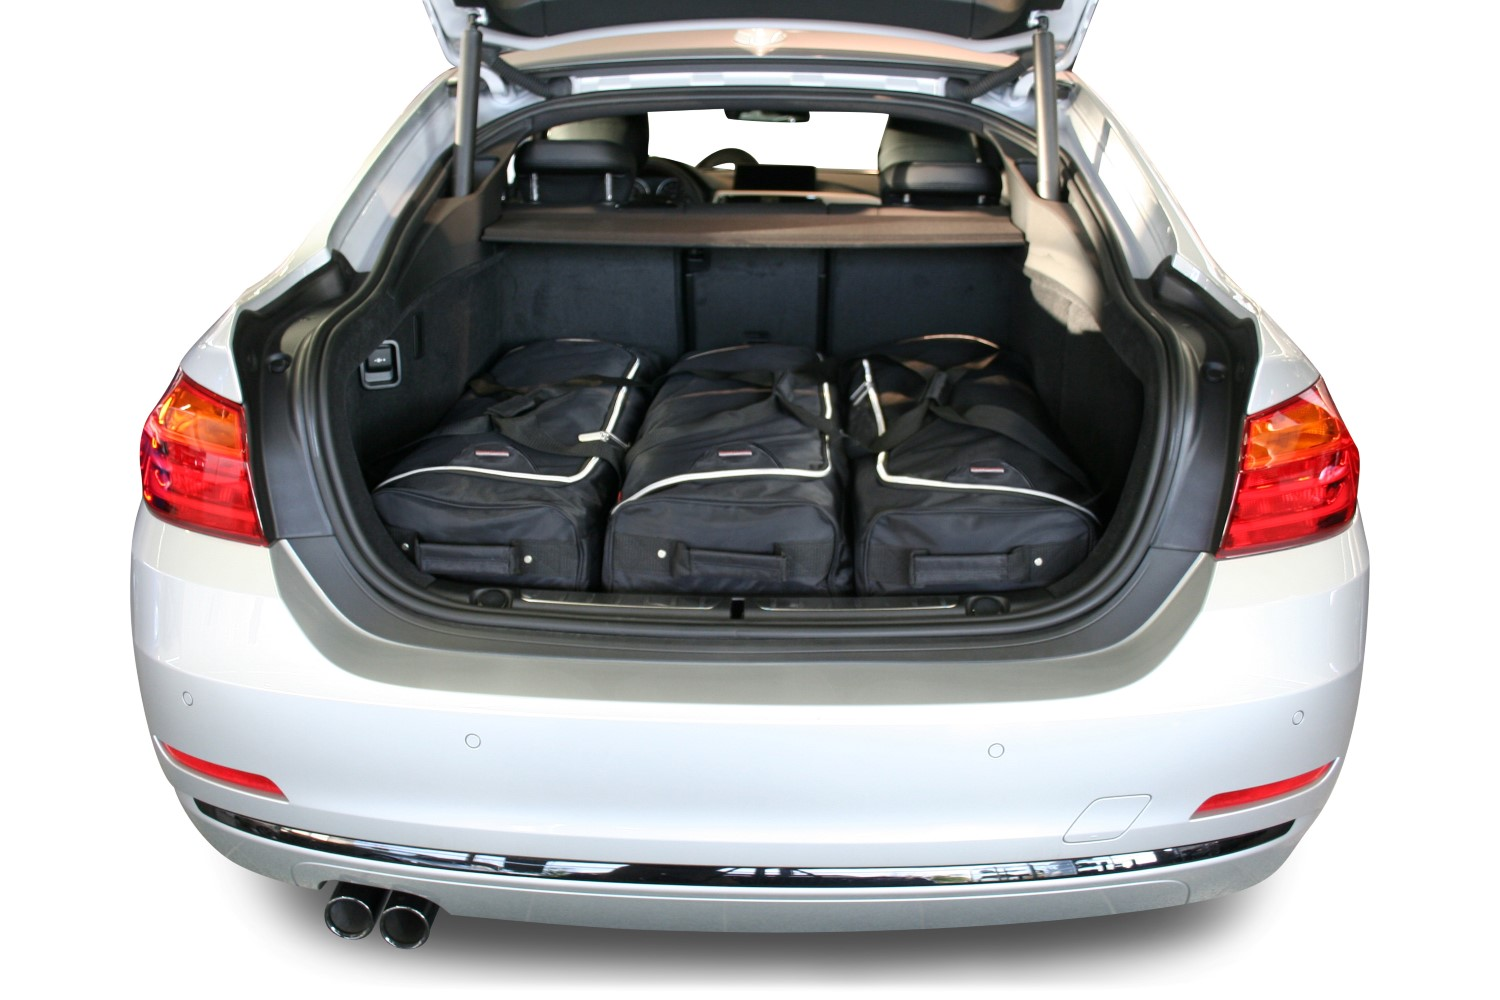 4 series bmw 4 series gran coup f36 2014 present 5d car bags travel bags. Black Bedroom Furniture Sets. Home Design Ideas